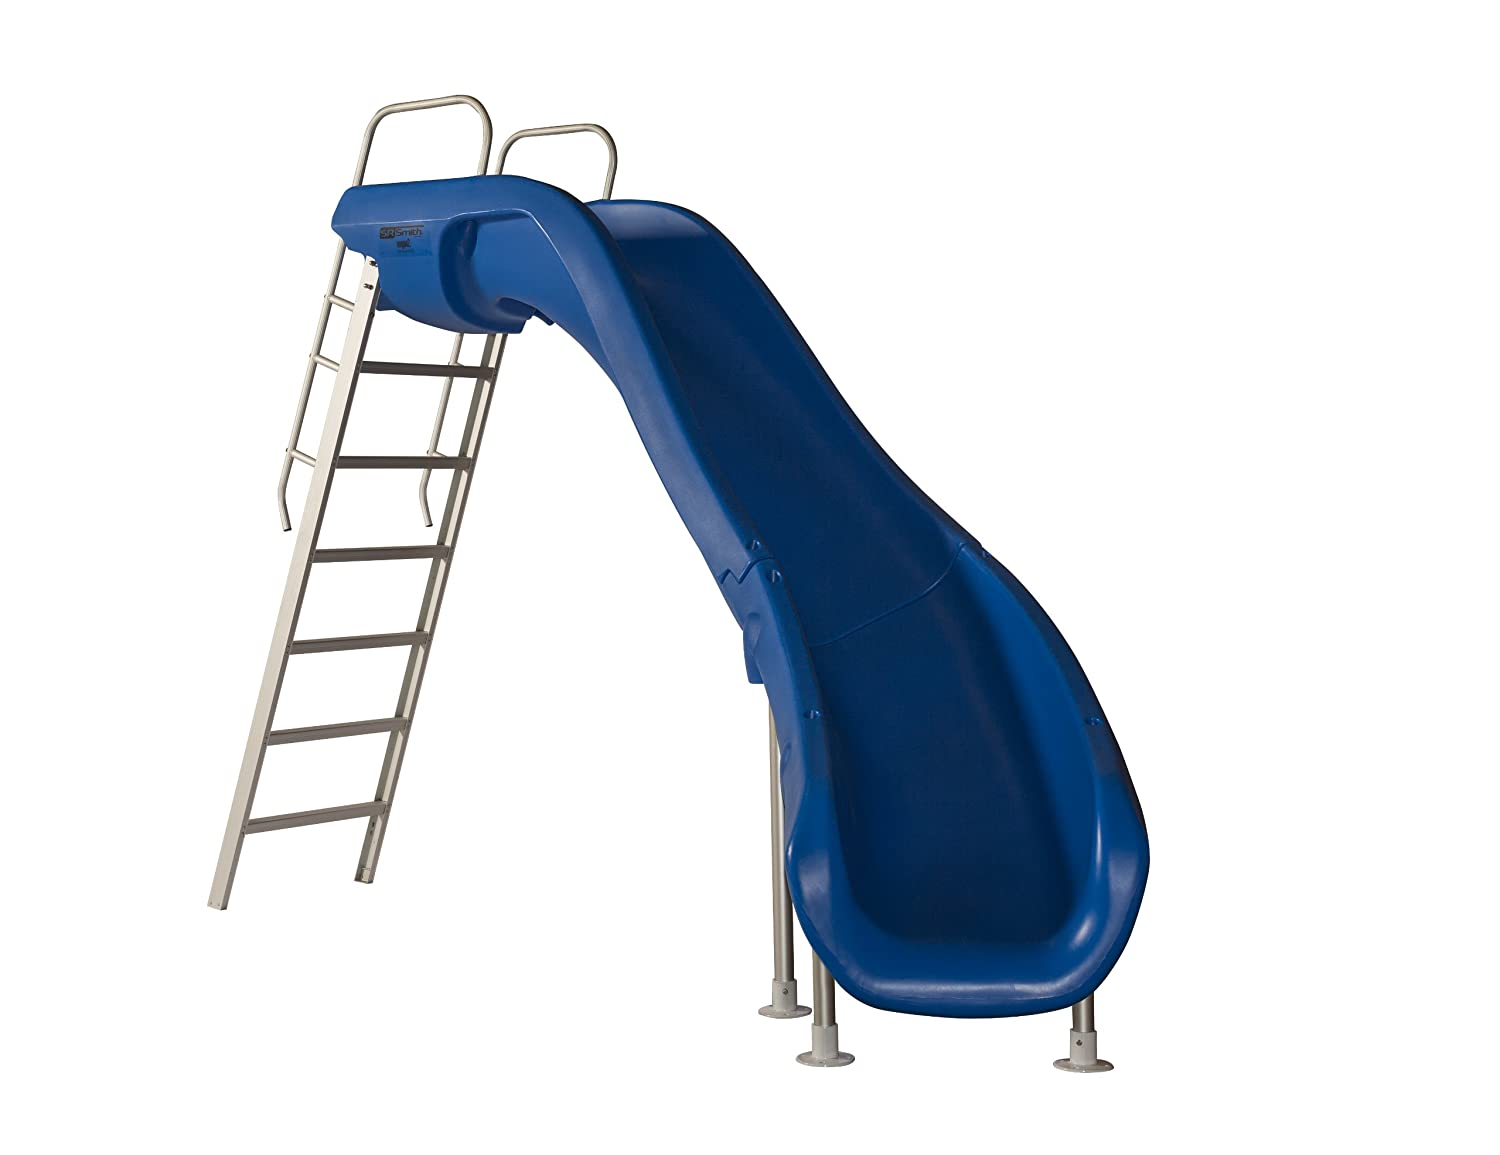 S.R. Smith 610-209-5813 Rogue2 Pool Slide